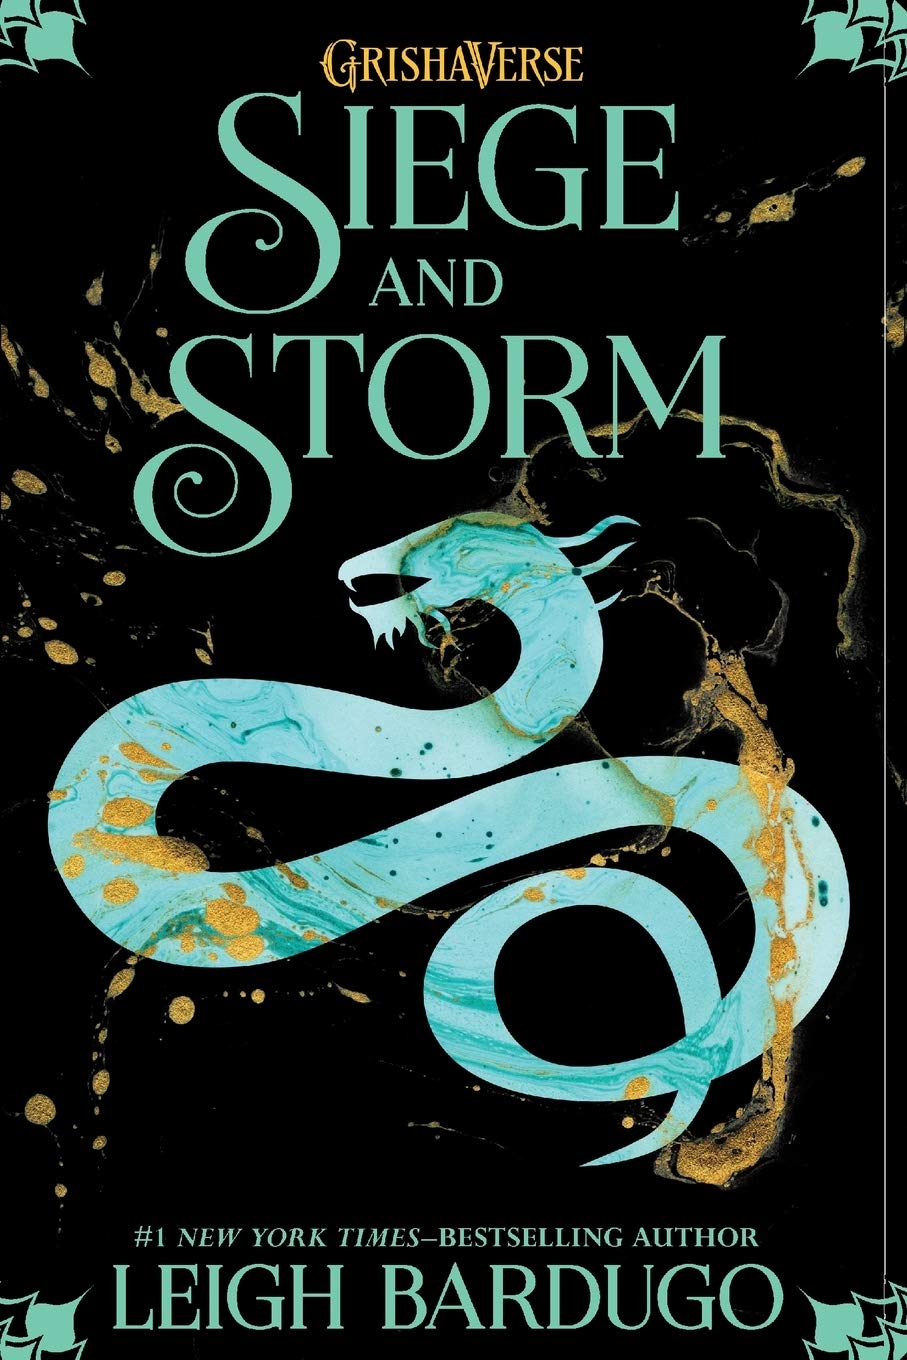 Amazon.com: Siege and Storm (The Shadow and Bone Trilogy, 2)  (9781250044433): Bardugo, Leigh: Books